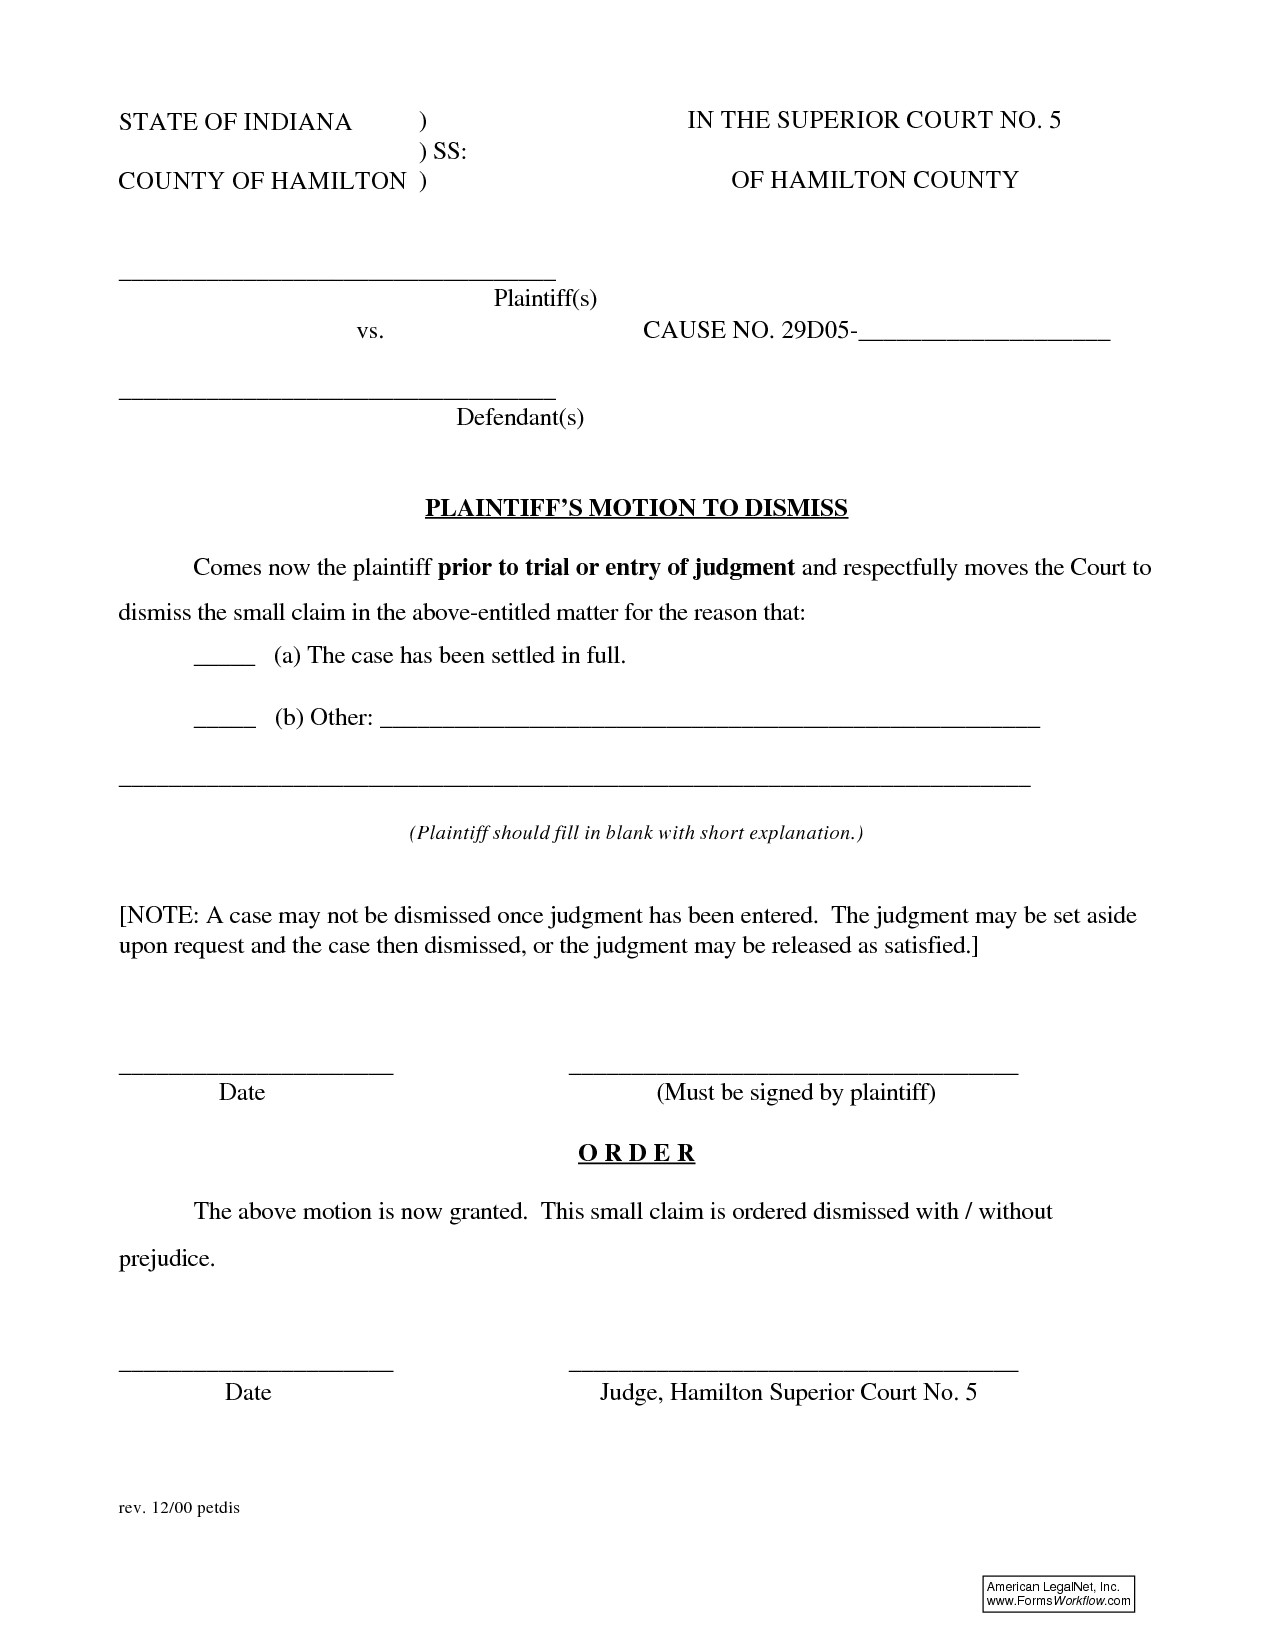 post motion to dismiss form 404071